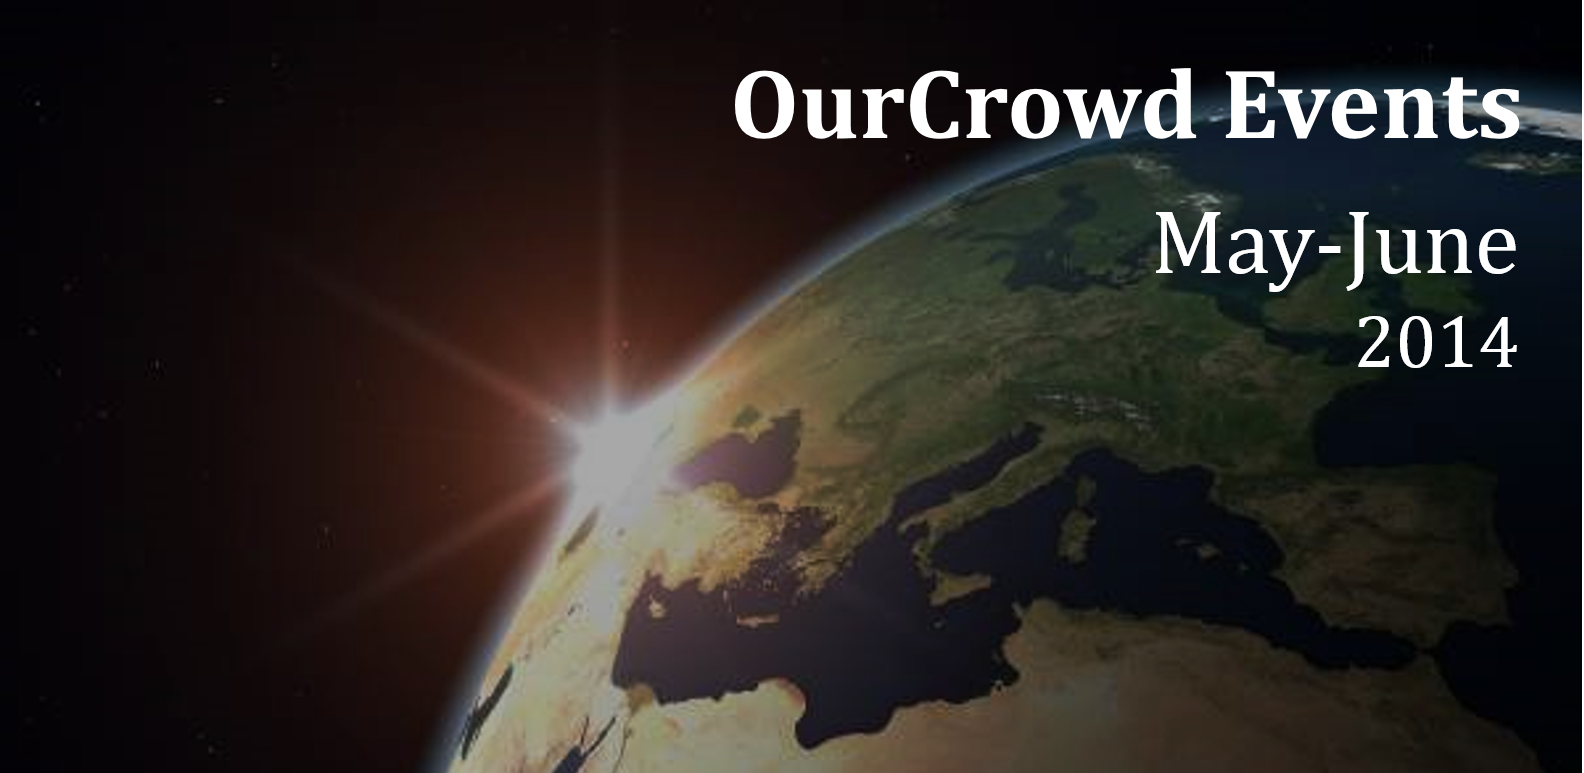 OurCrowd Events May-June